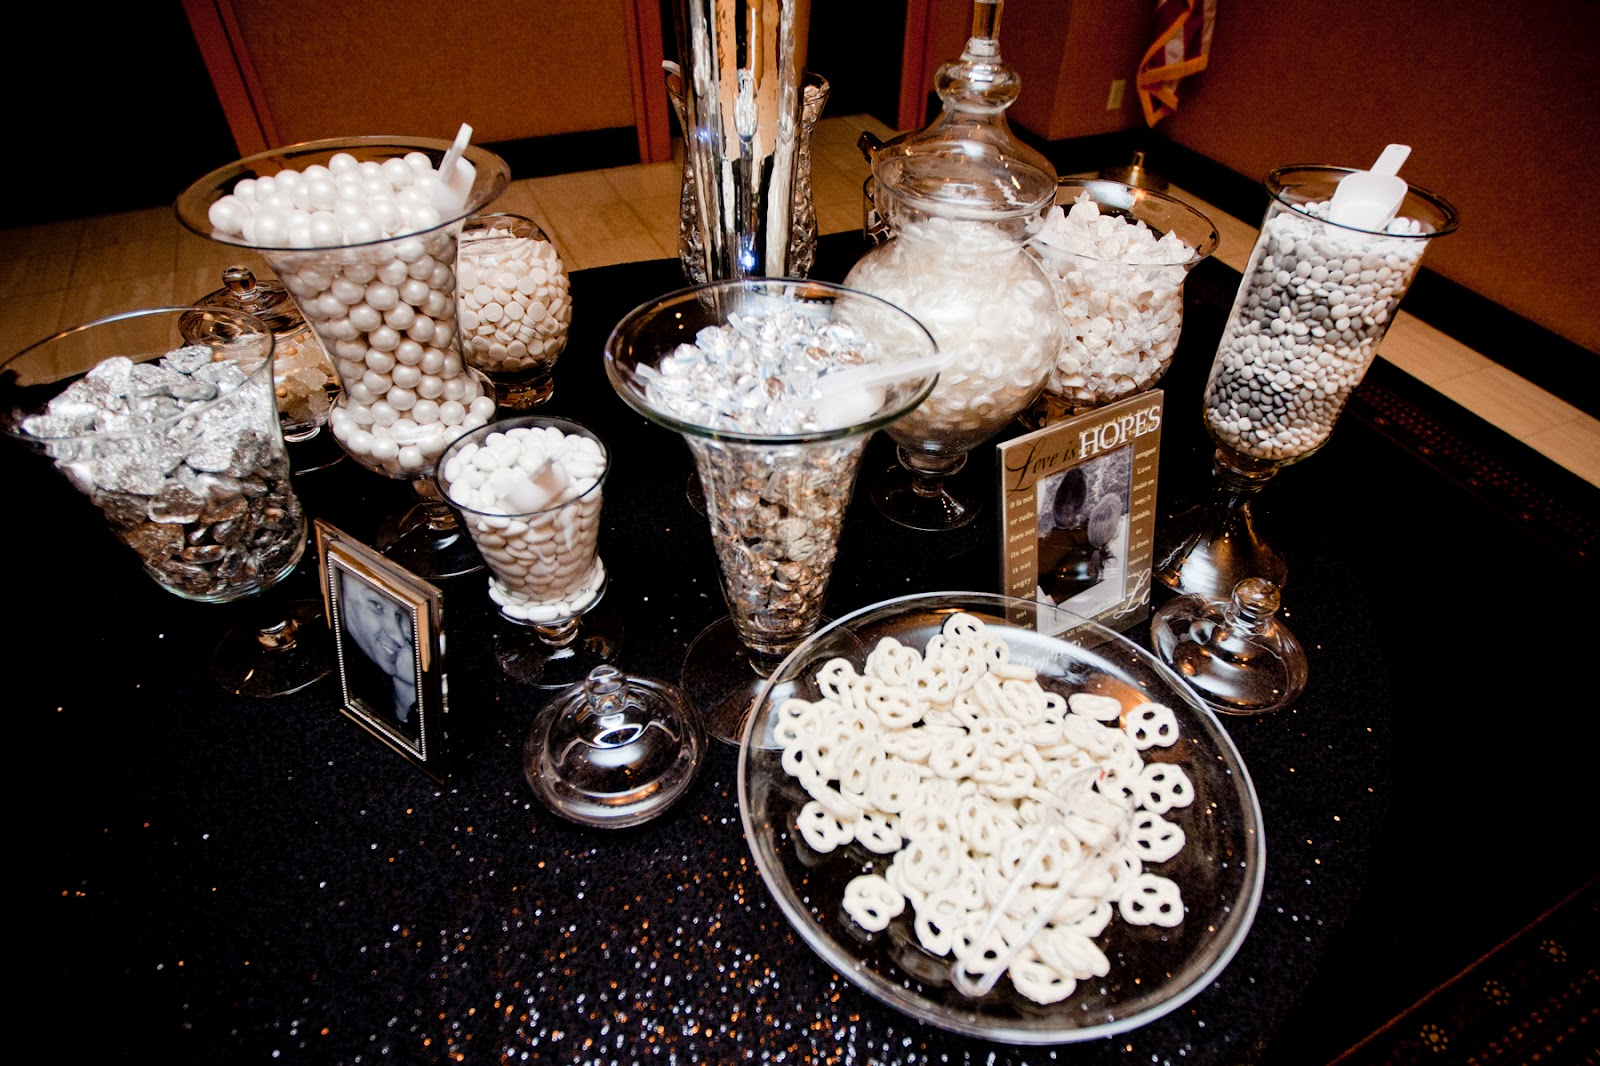 candy table wedding candy bar 12 best images about Candy table on Pinterest Candy bars Candy buffet tables and White candy bars